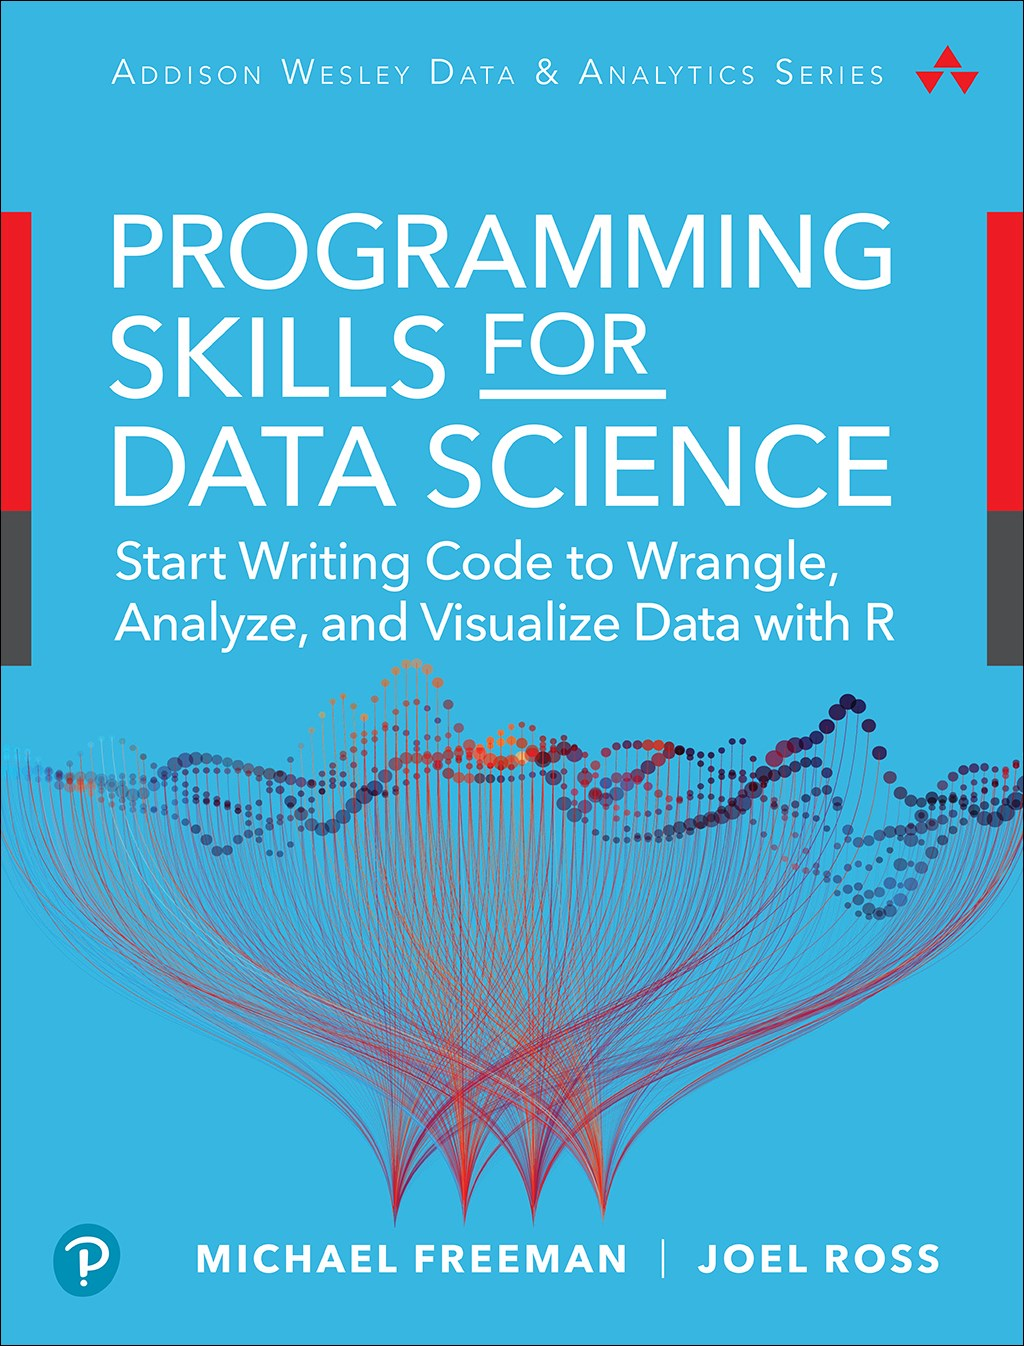 Programming Skills for Data Science: Start Writing Code to Wrangle, Analyze, and Visualize Data with R (All Inclusive)